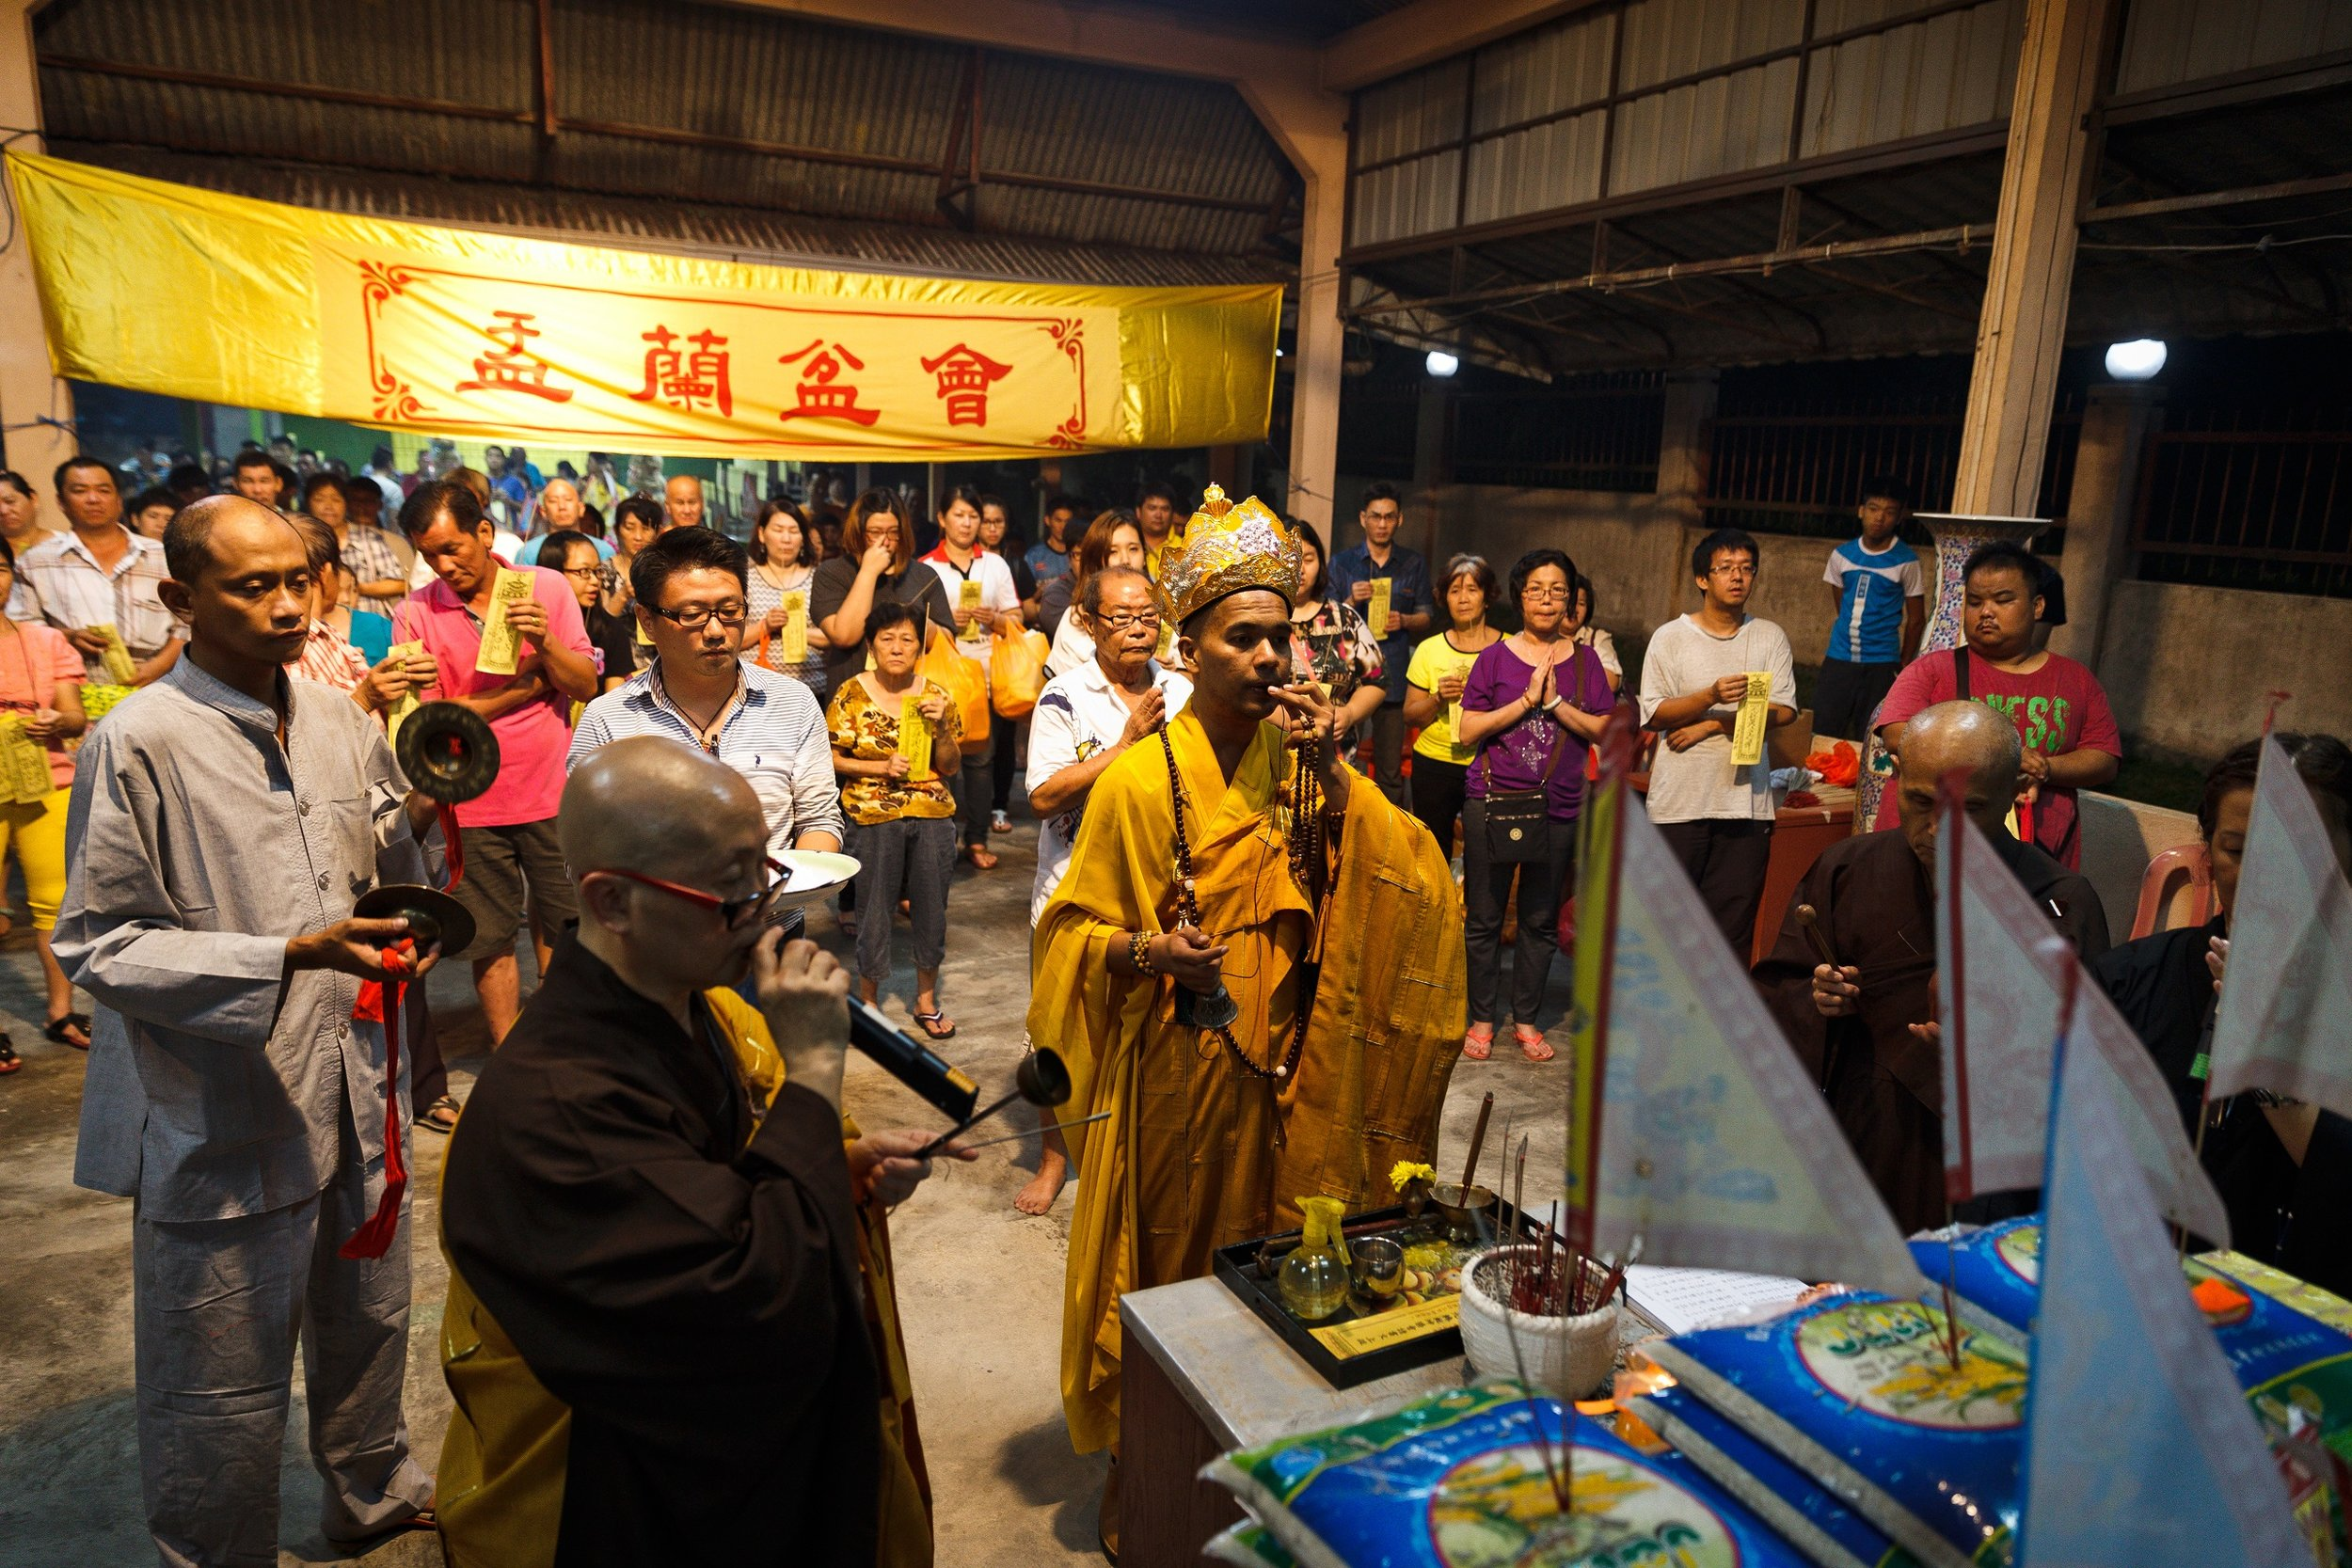 Chanting ceremony during Festival of the Hungry Ghosts at the Buddhist Temple. (photo by Mango Loke)